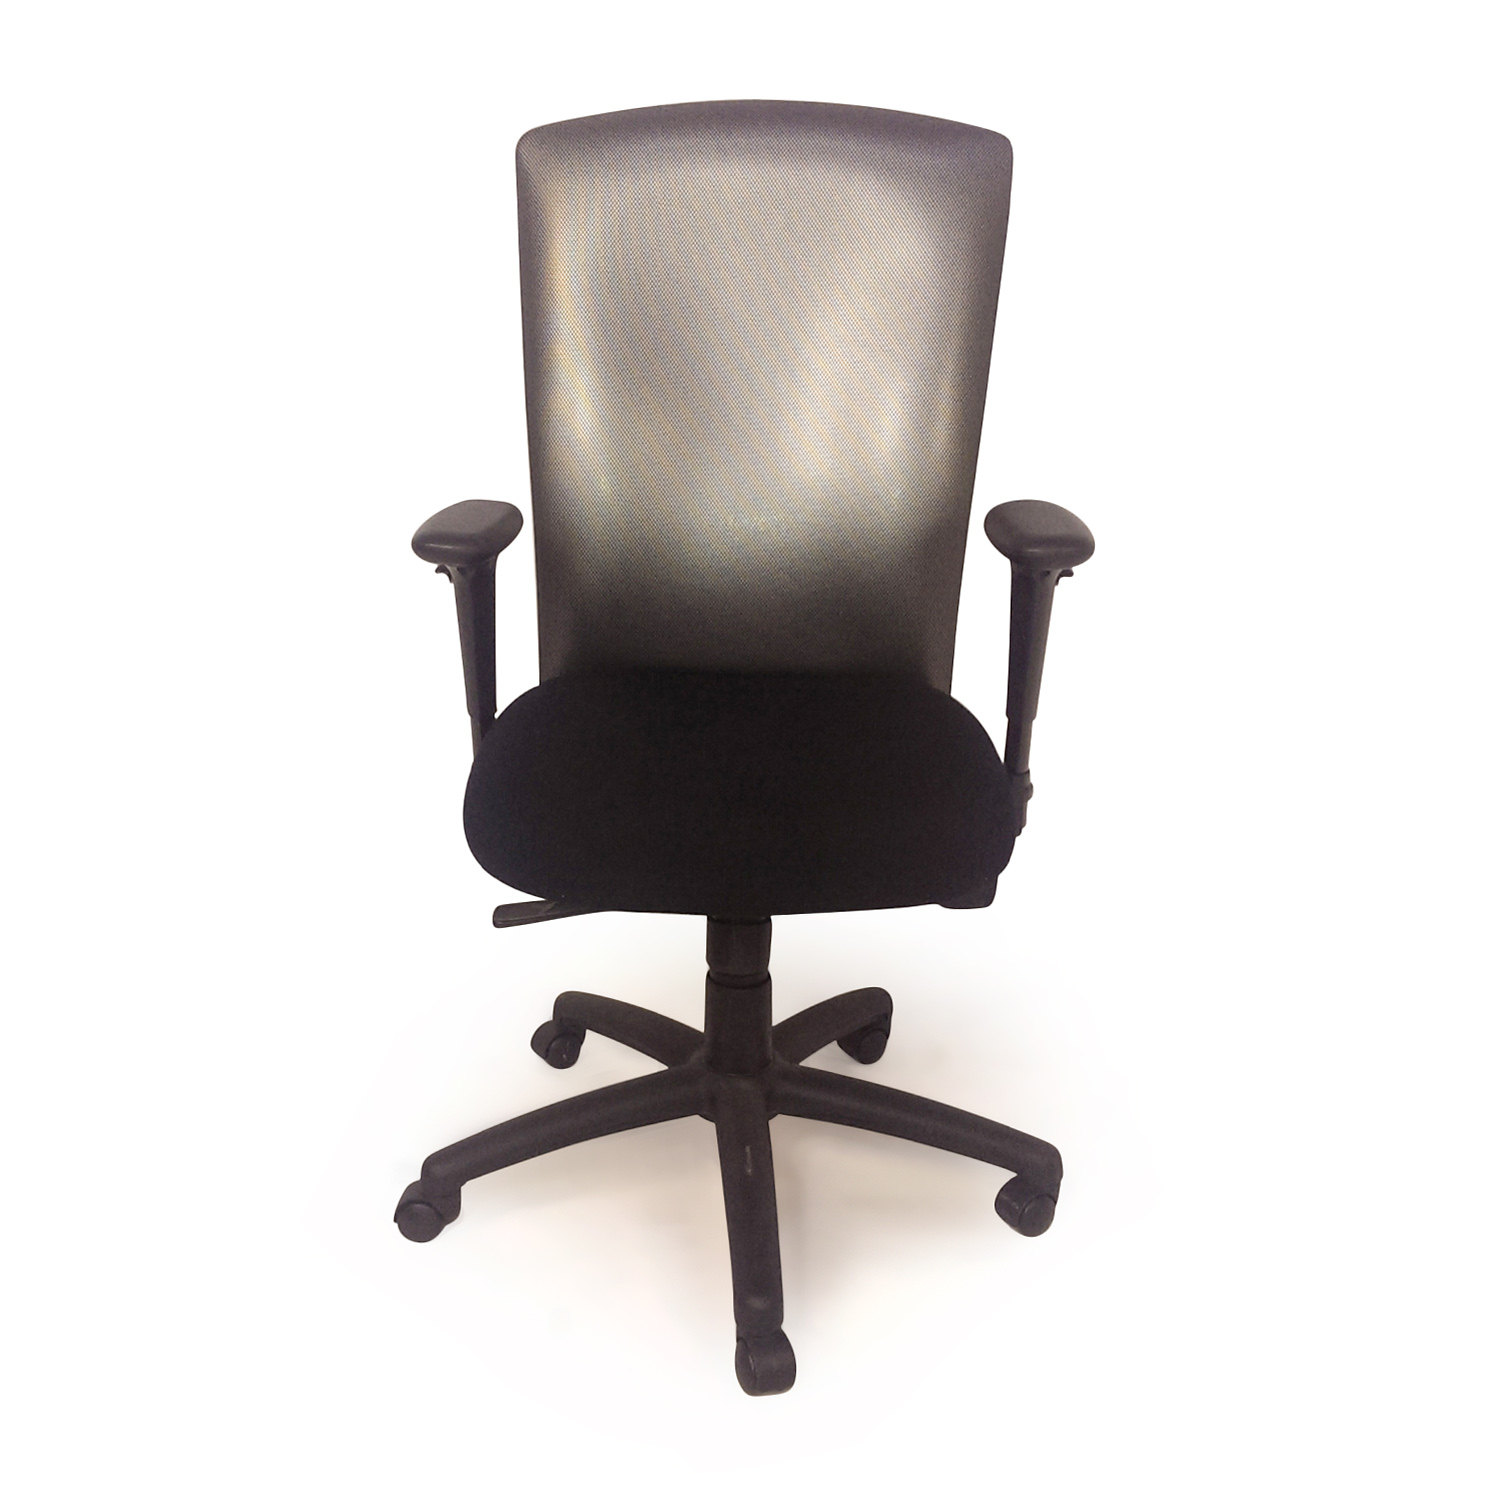 57 off black leather executive office chair chairs for Modern leather office chairs